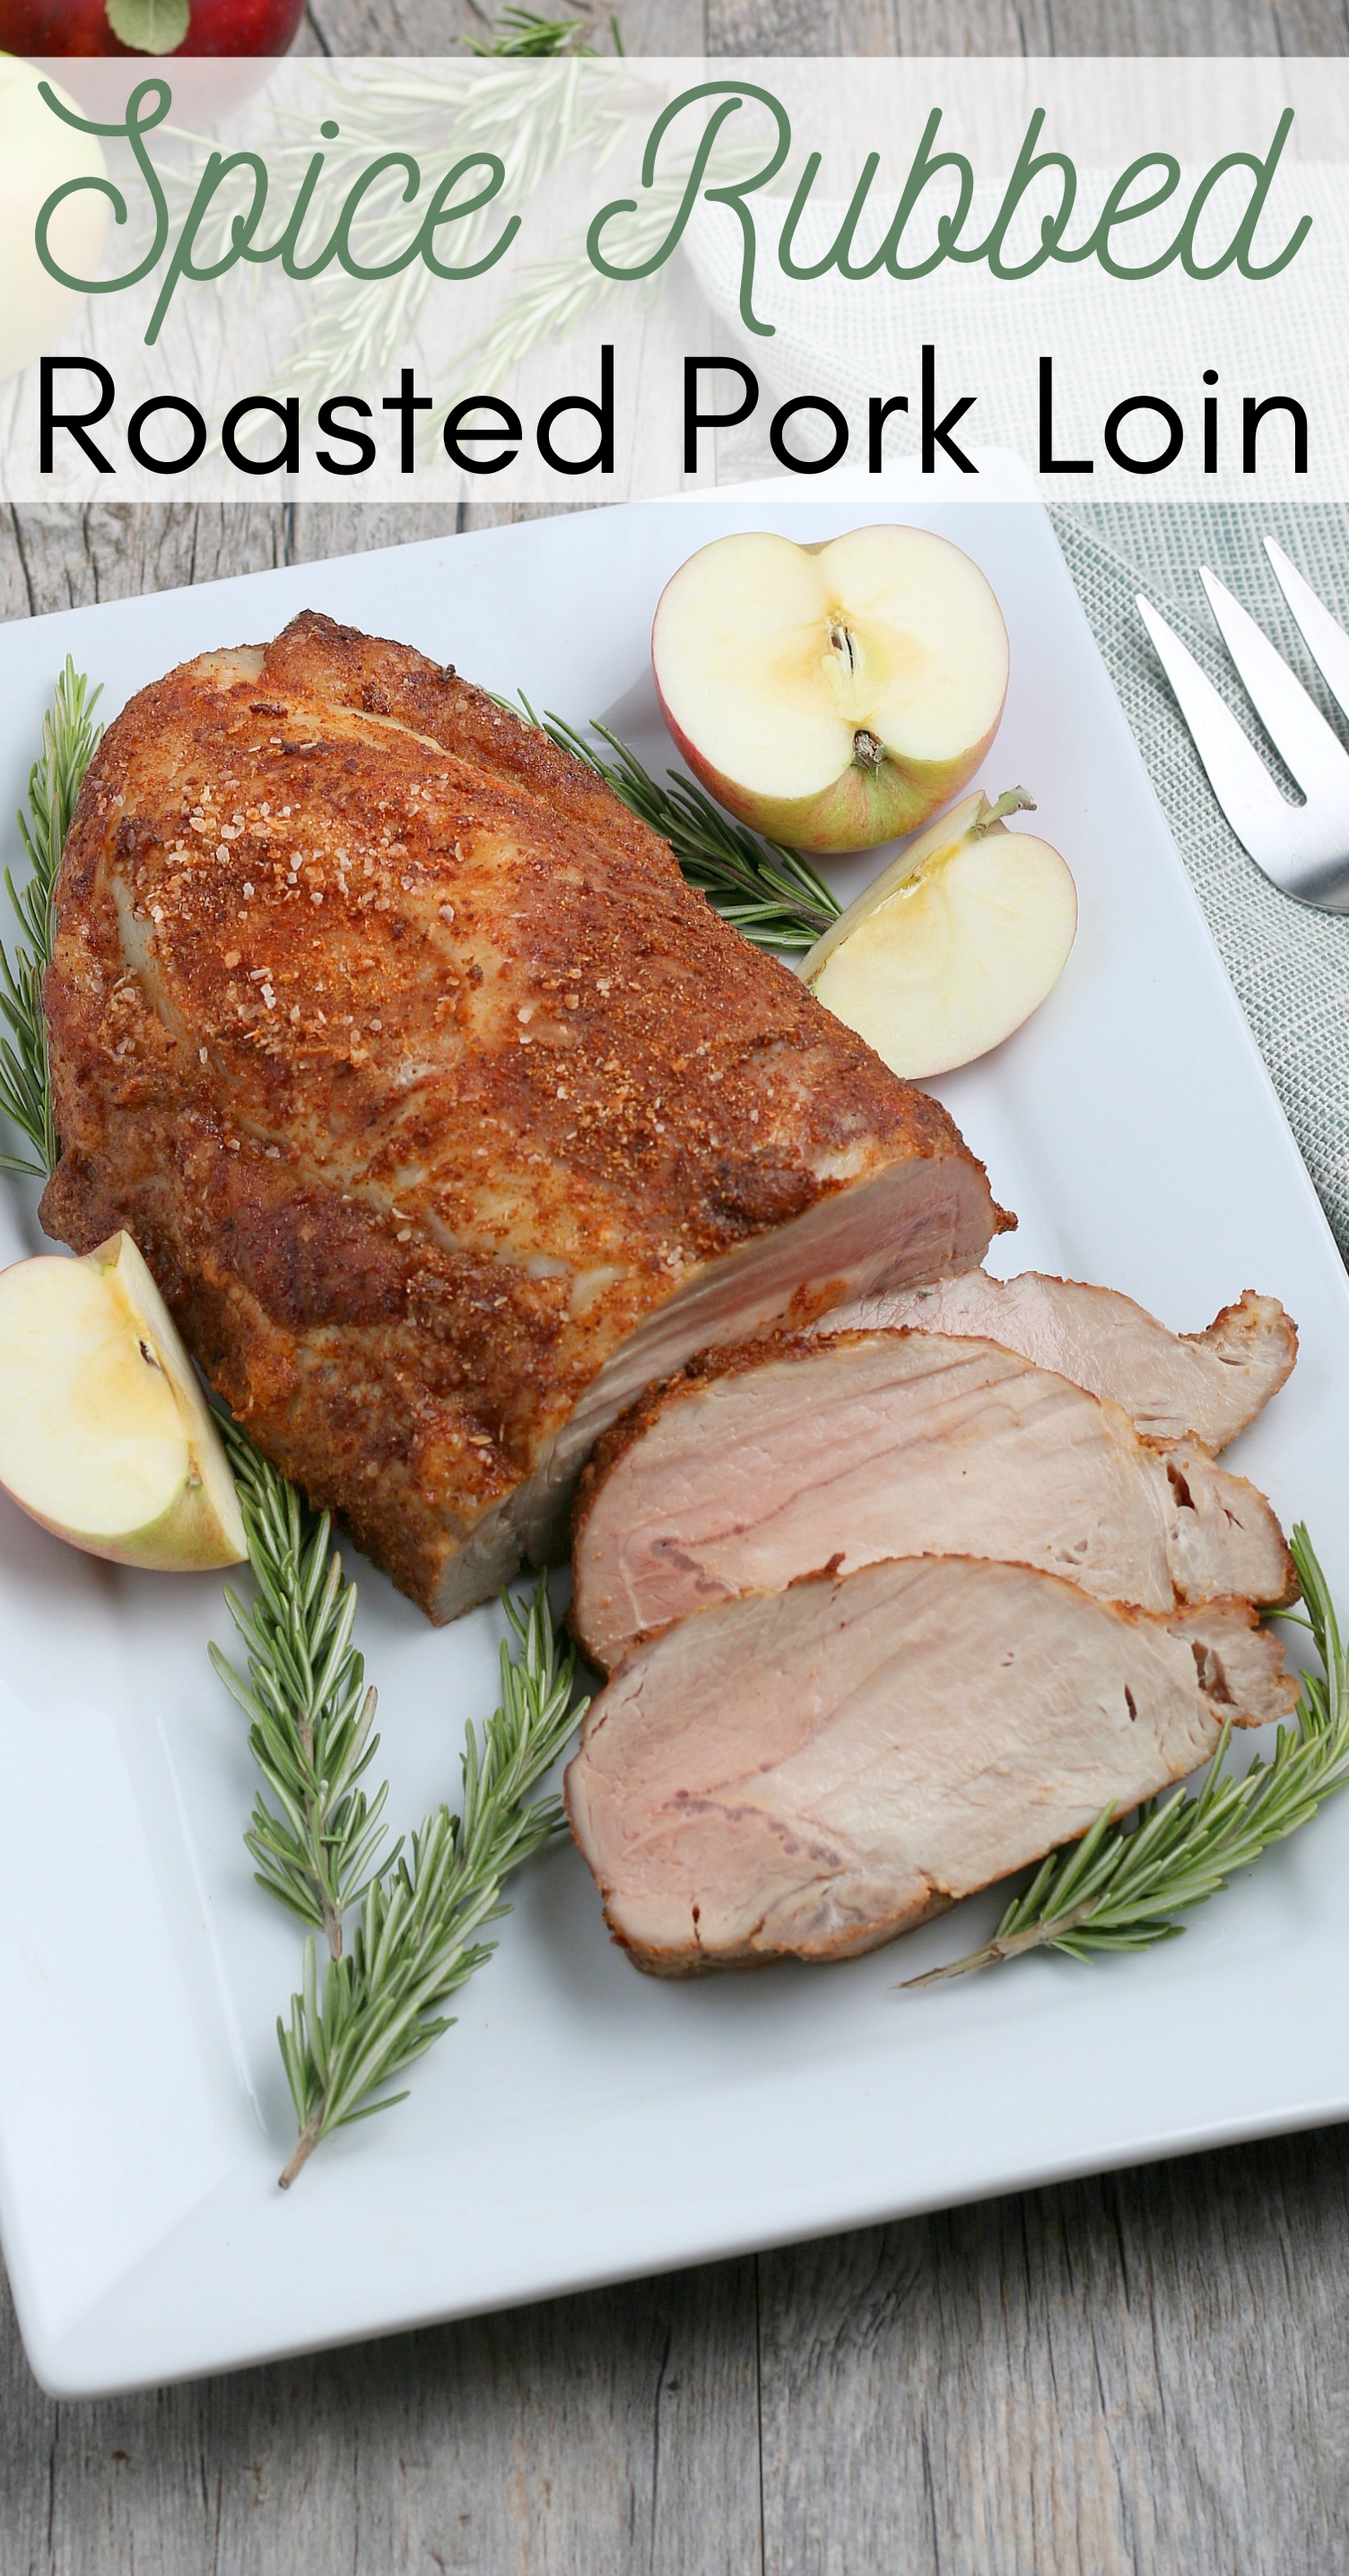 Spice Rubbed Oven Roasted Pork Loin Recipe Recipe Pork Loin Roast Recipes Pork Loin Recipes Dinner Soup Recipes